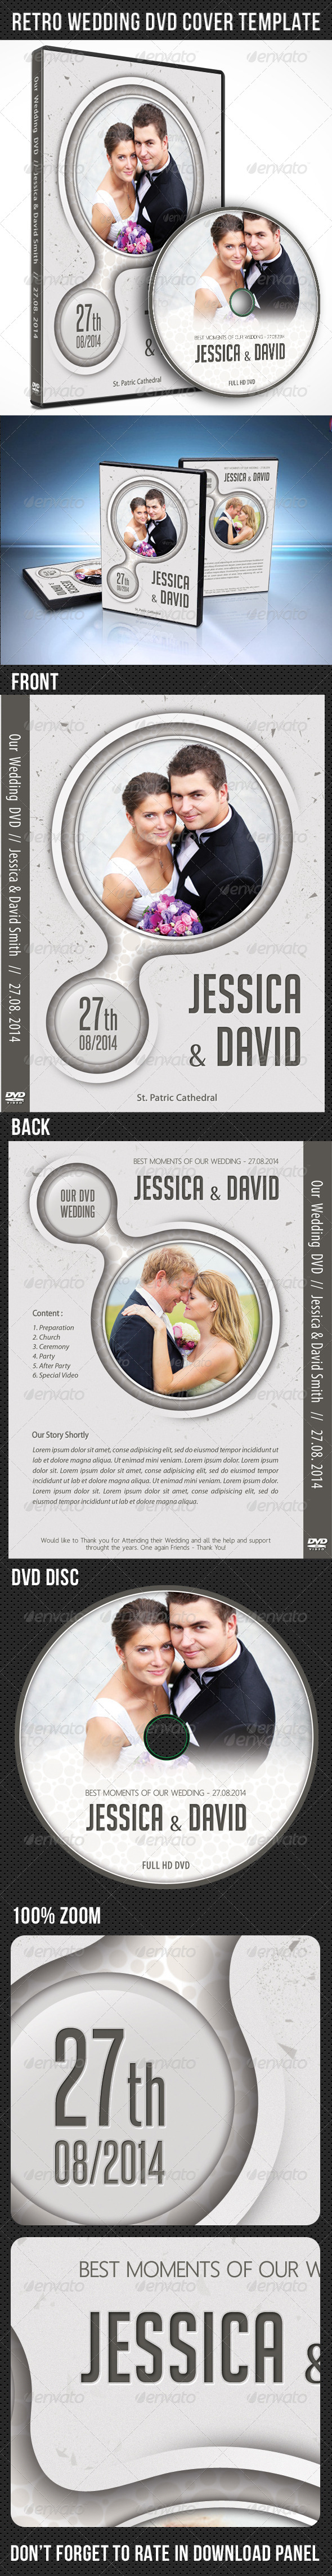 GraphicRiver Wedding DVD Cover Template 05 7907356